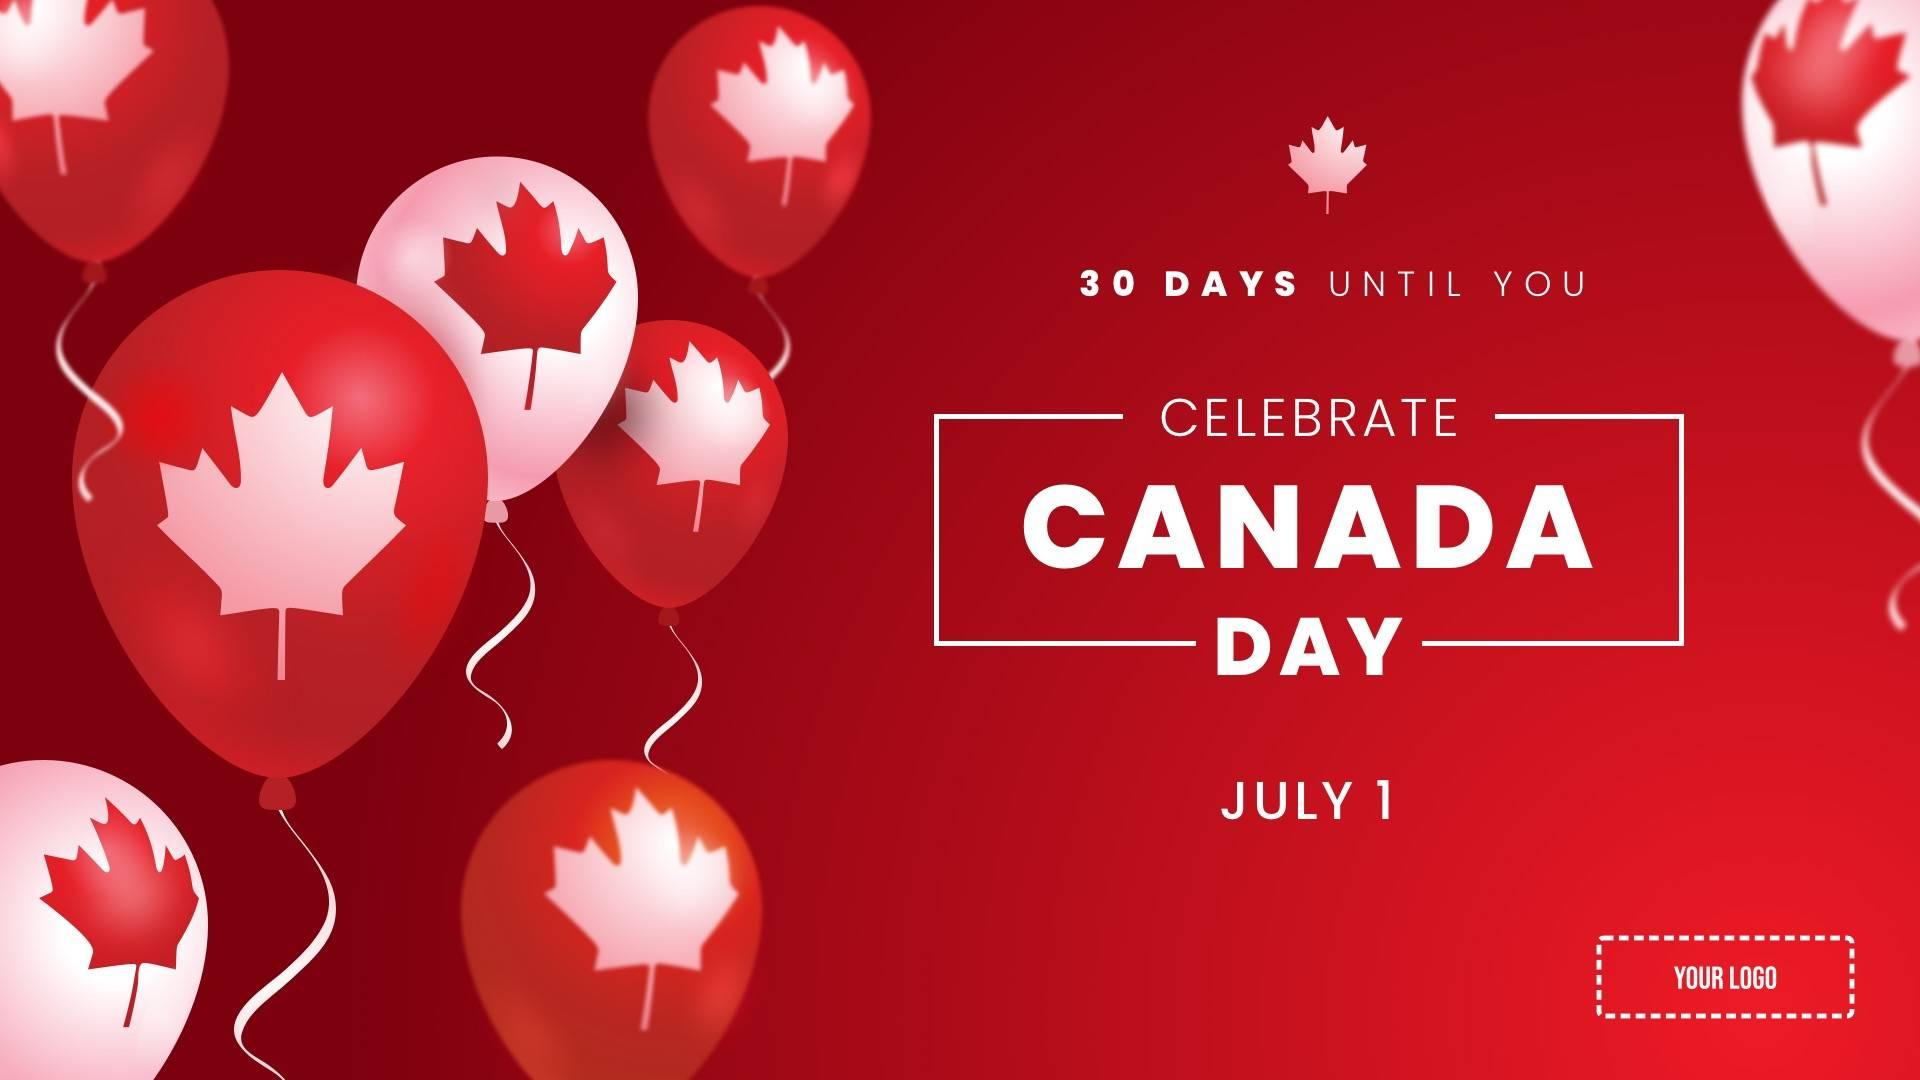 Canada Day - Countdown Digital Signage Template